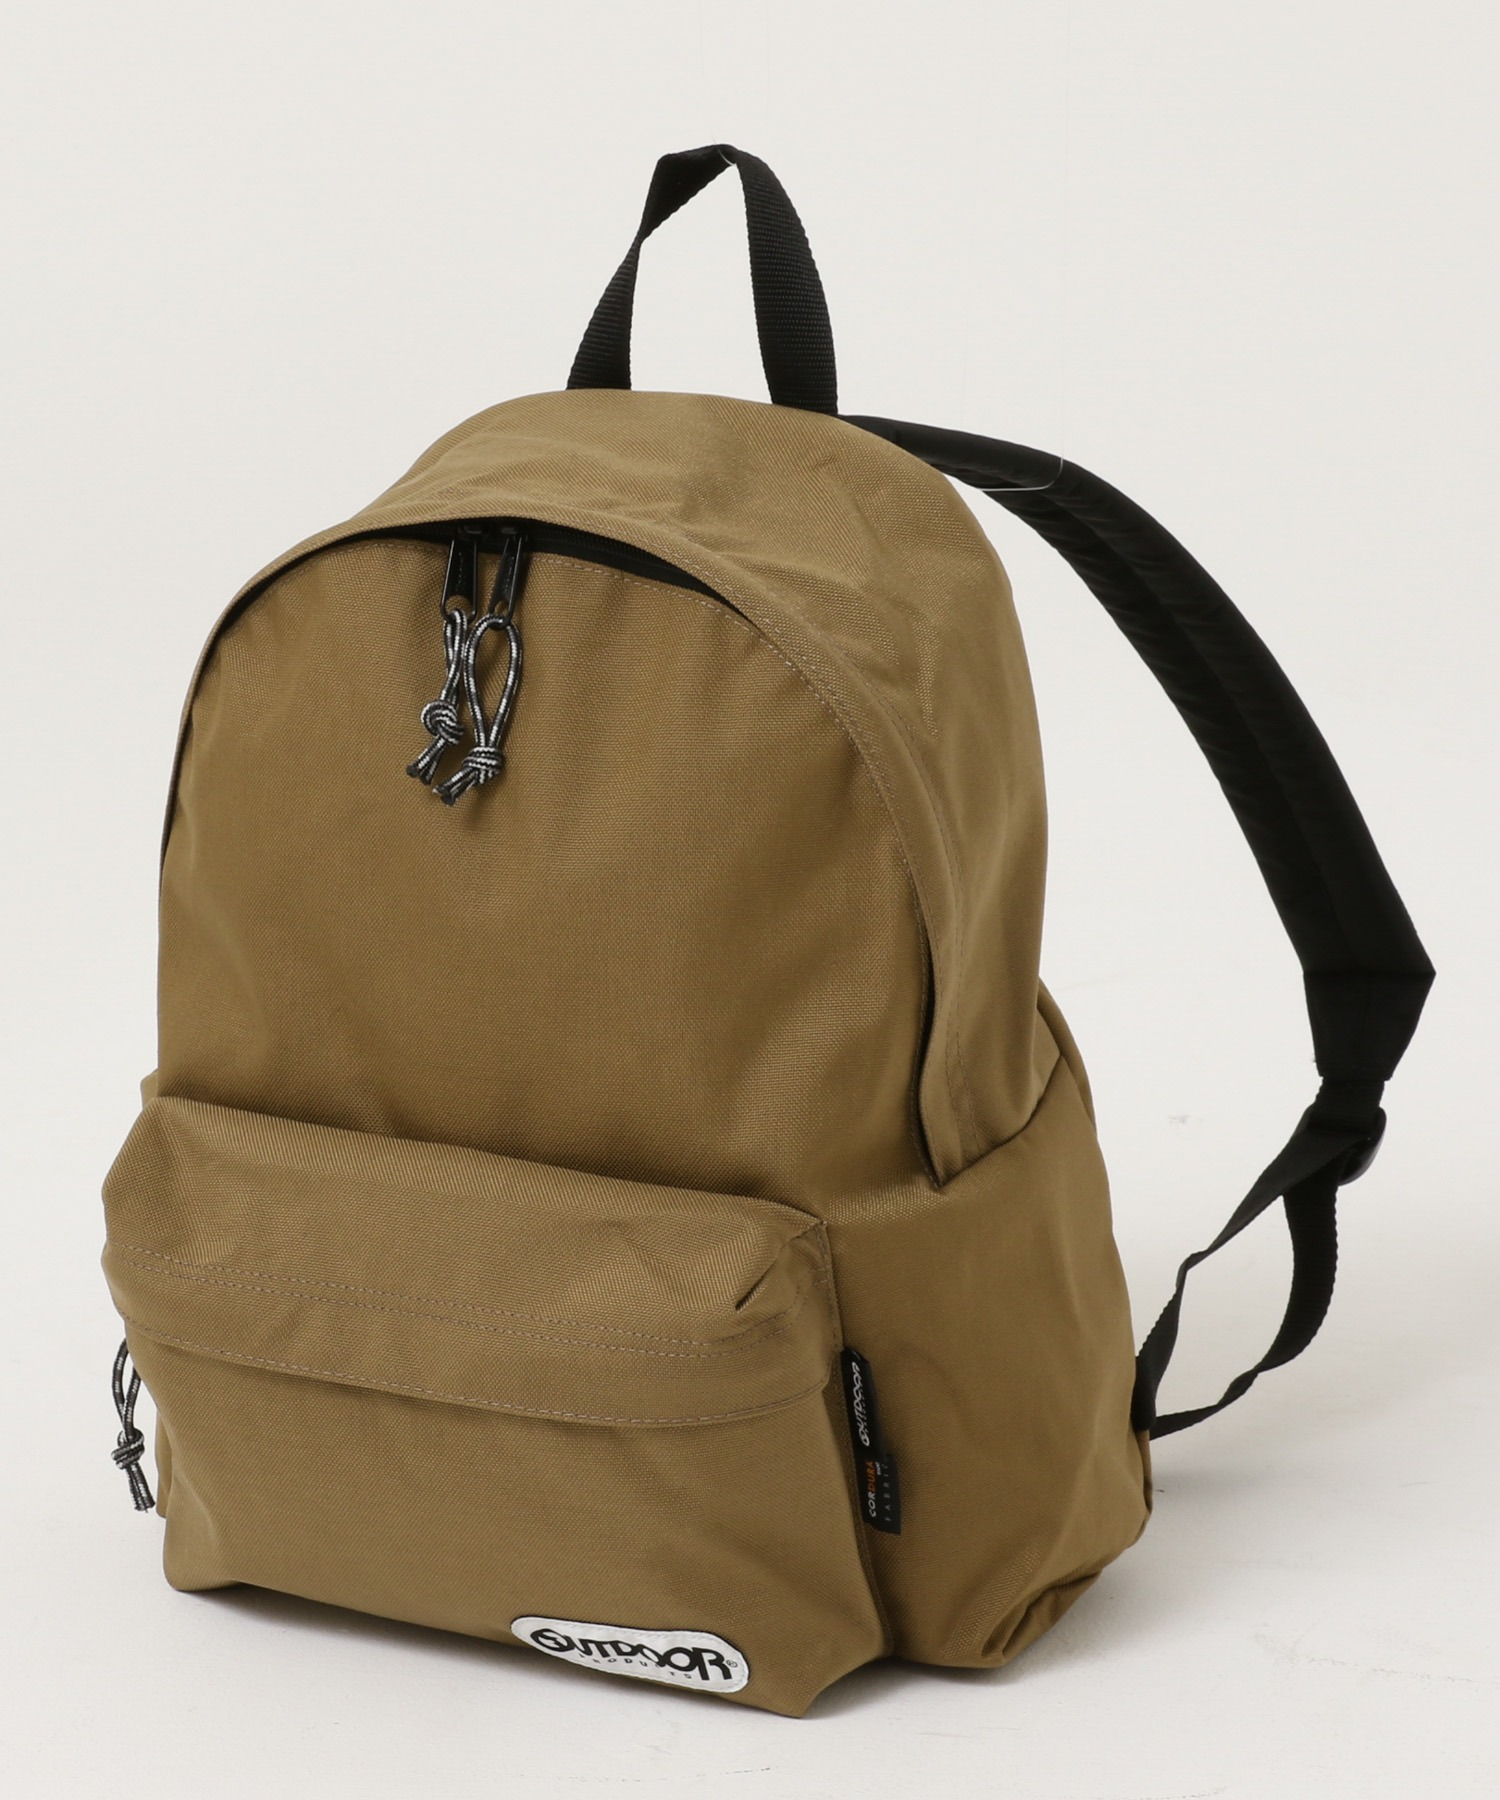 【OUTDOOR PRODUCTS】 452U ナイロンデイパック